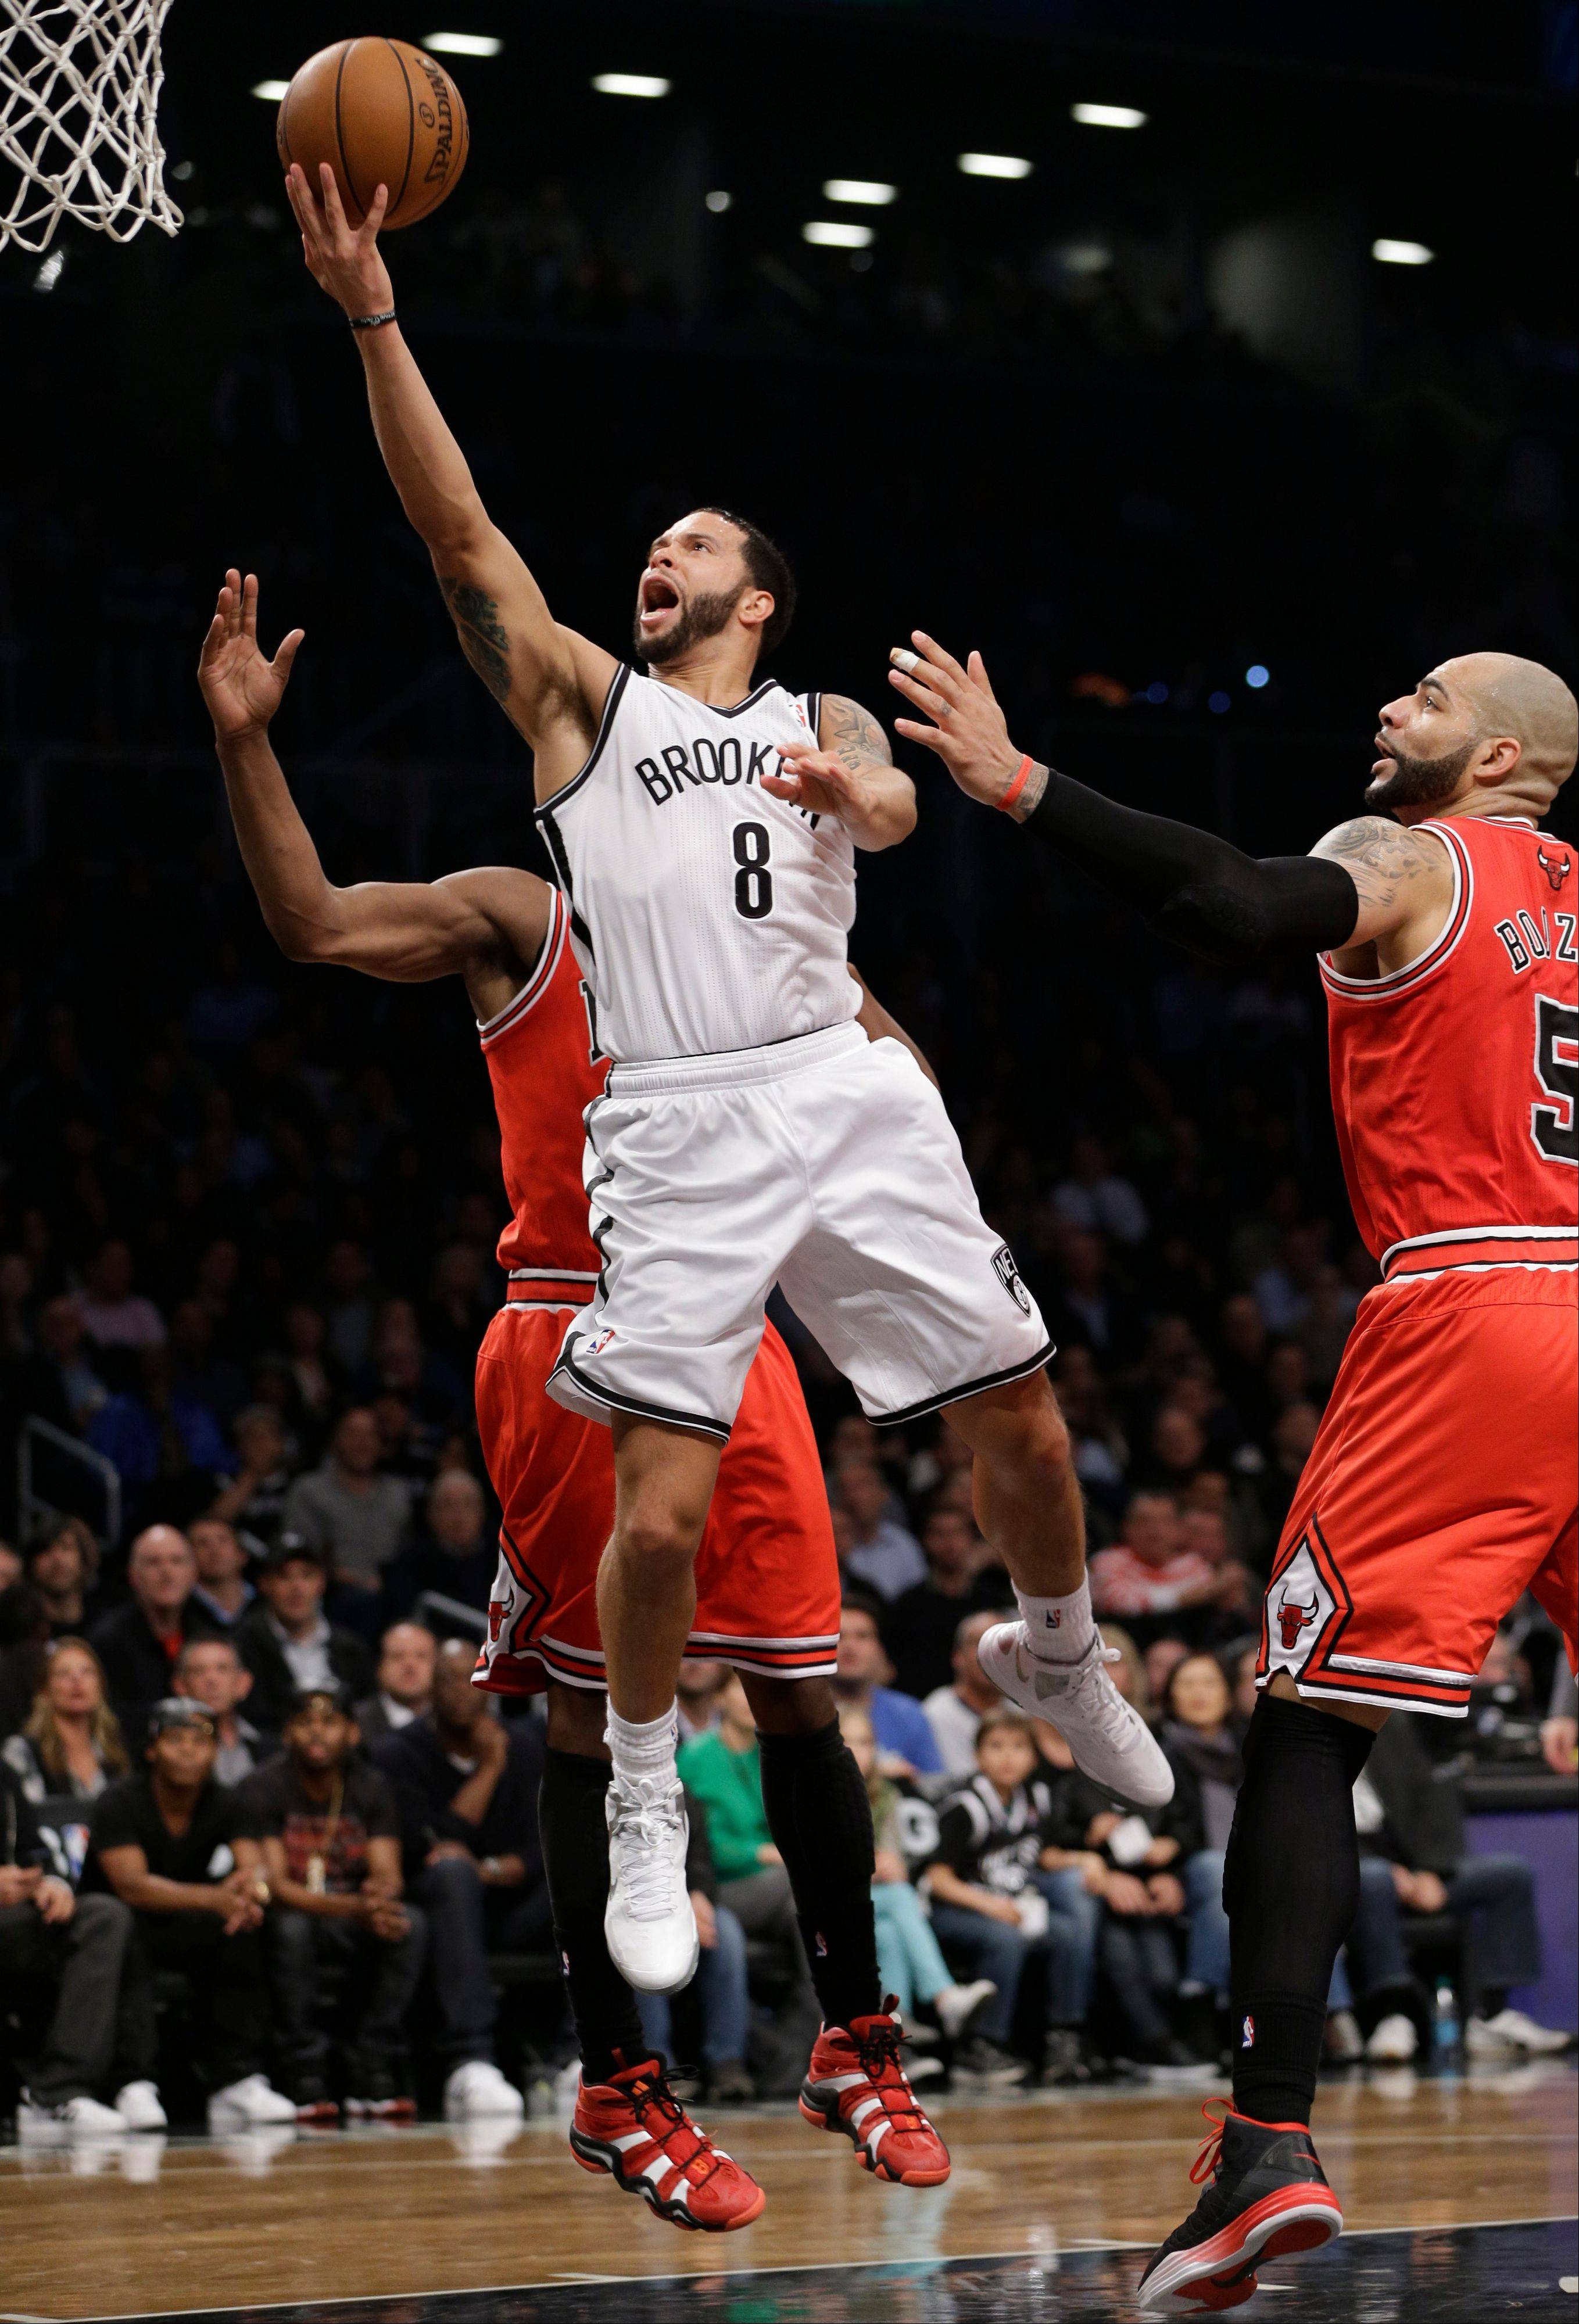 Brooklyn Nets guard Deron Williams (8) goes up for a layup past Chicago Bulls forward Carlos Boozer (5) in the first half of Game 5 of their first-round NBA basketball playoff series, Monday, April 29, 2013, in New York. The Nets won 110-91.